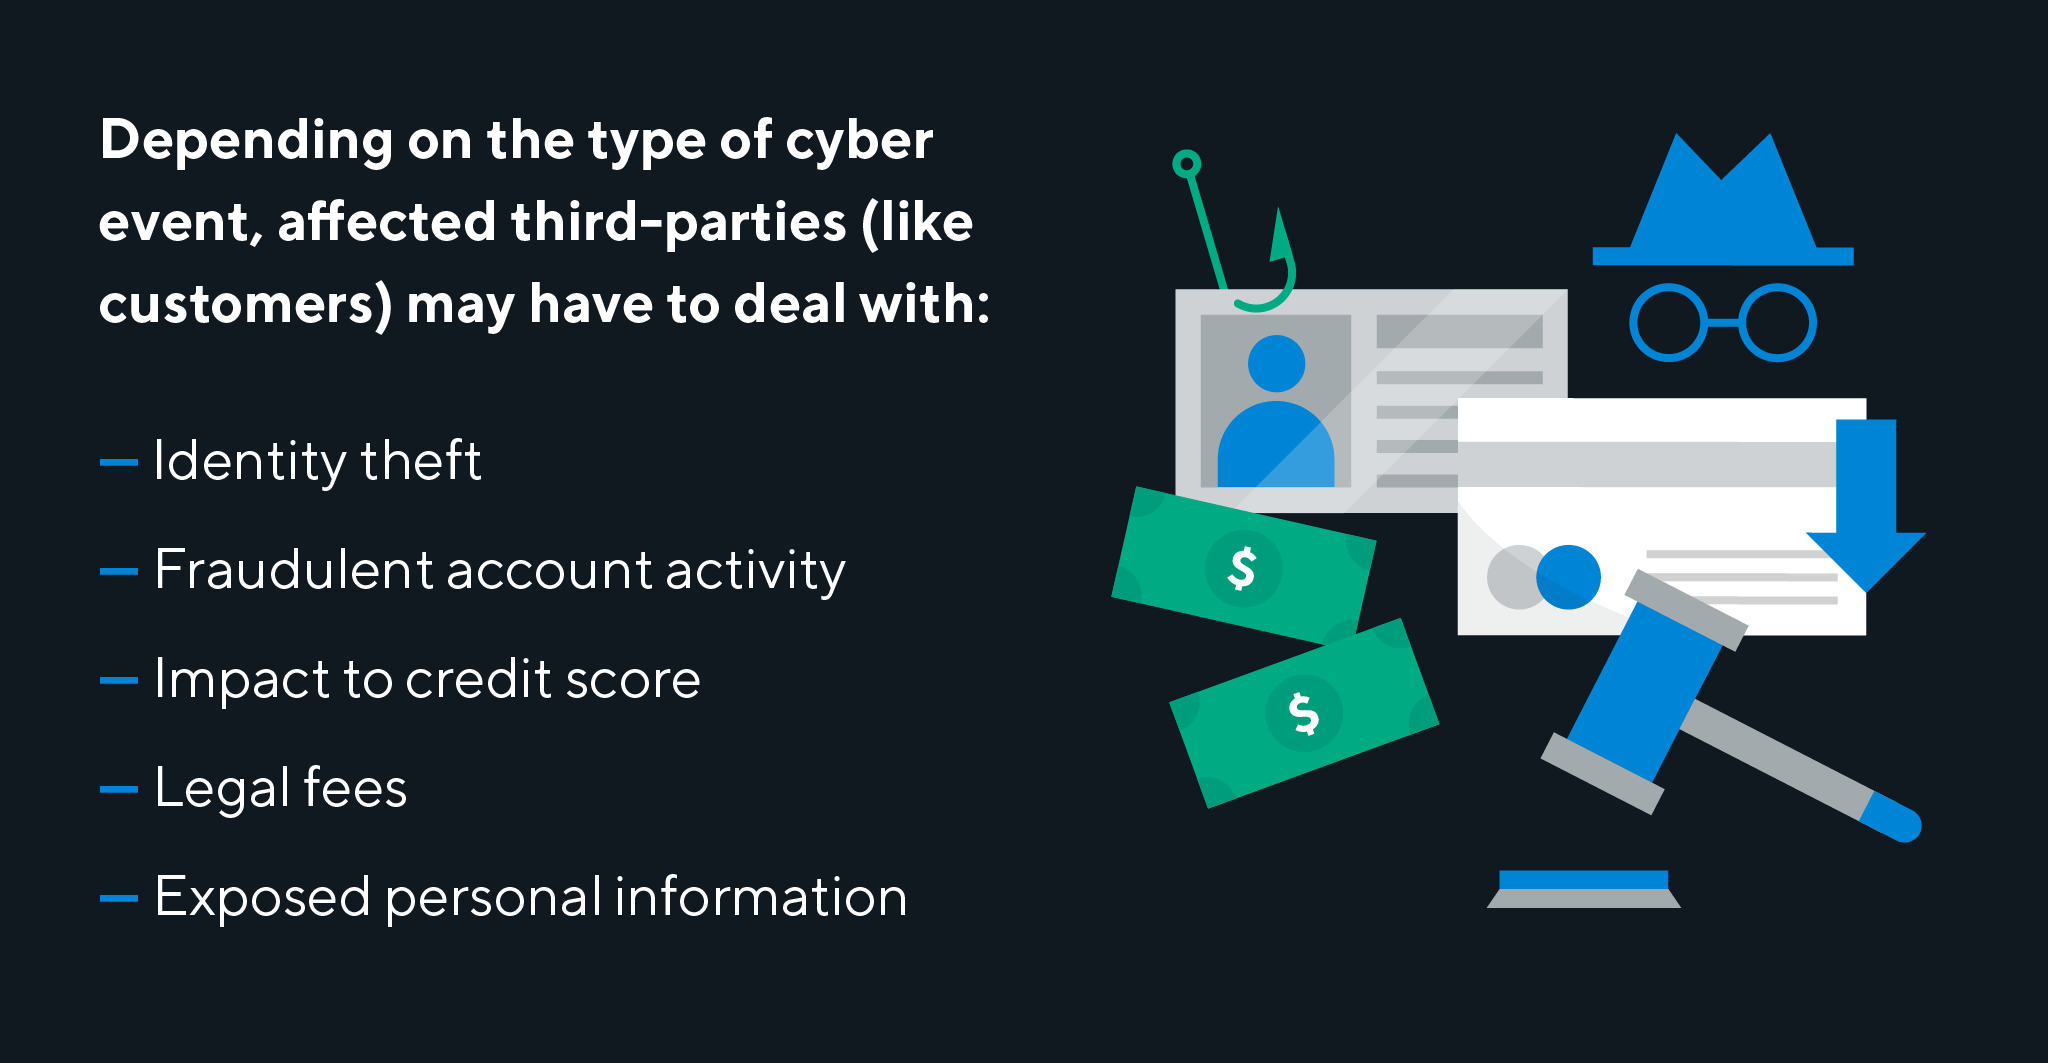 Infographic highlighting cyber attack effects on third-parties